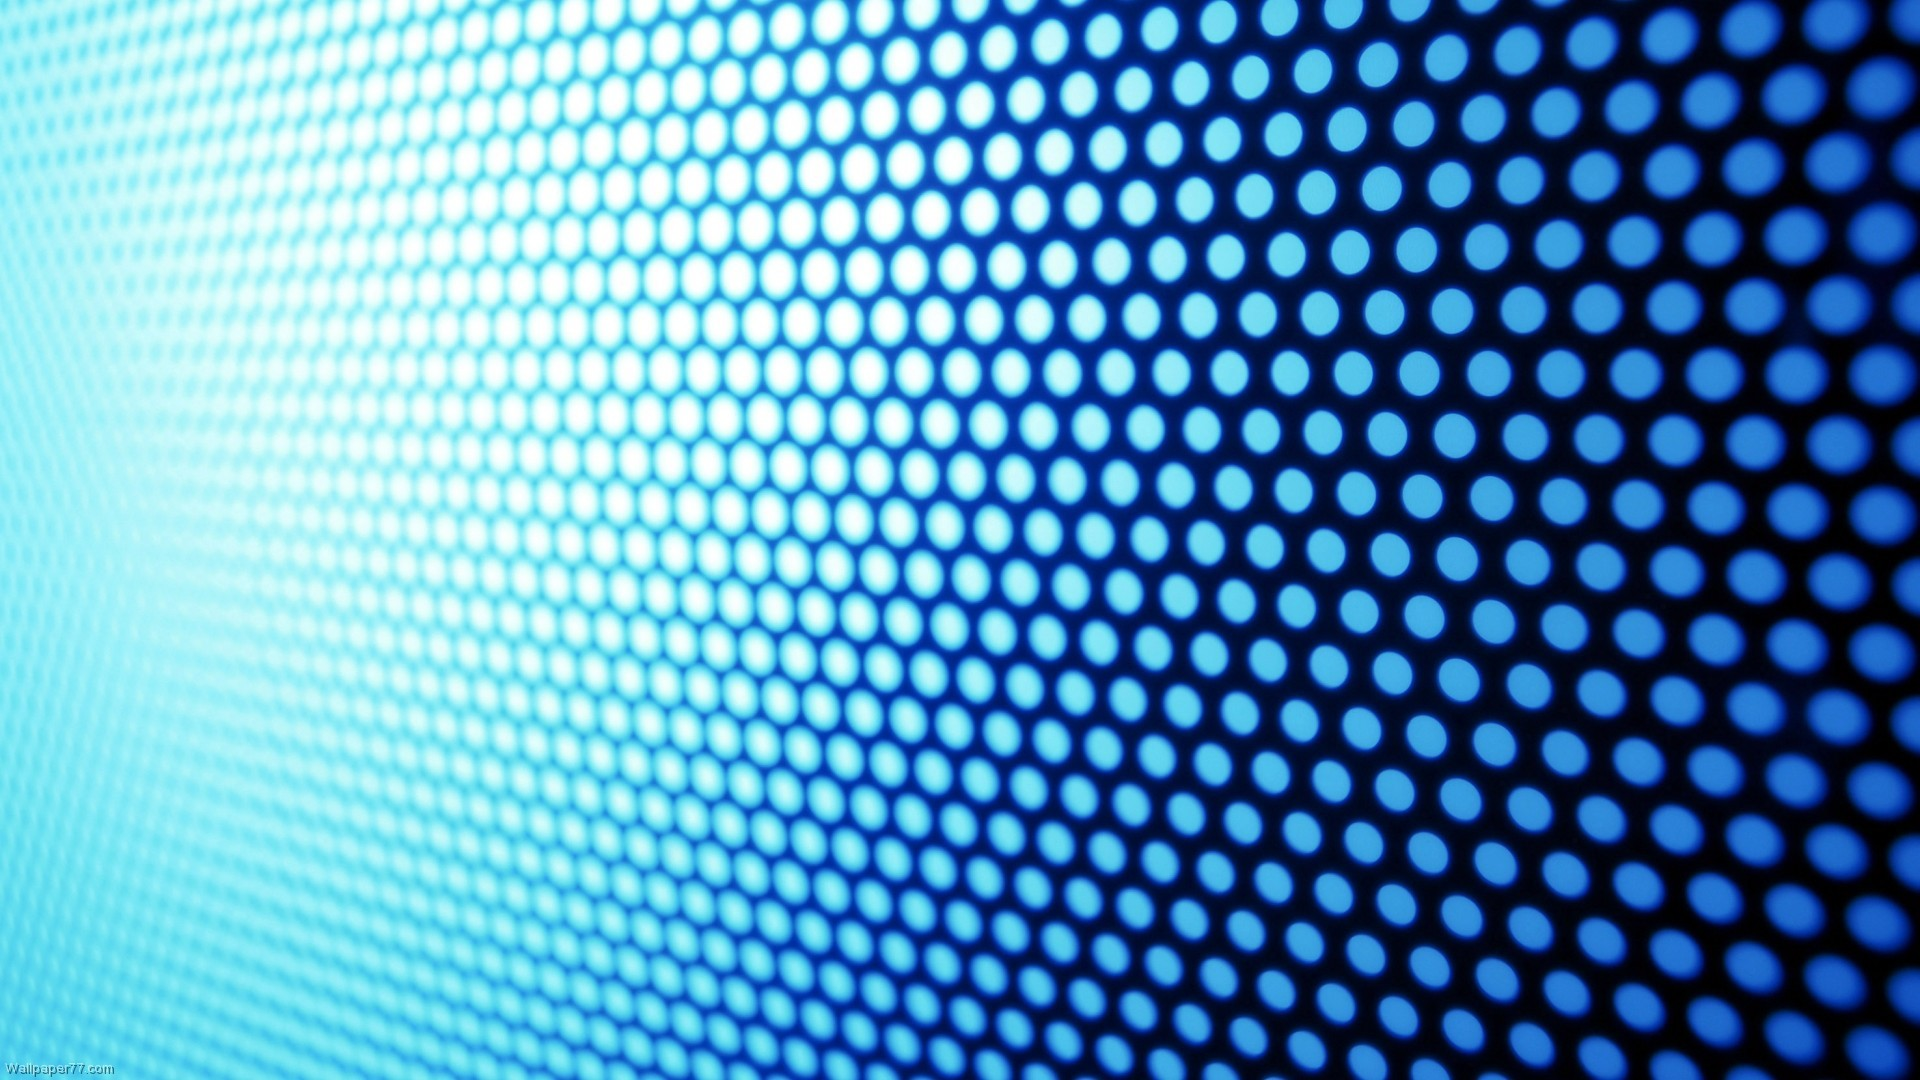 Blue Dots Pattern – See more Beautiful background images for video at  backgroundimages.